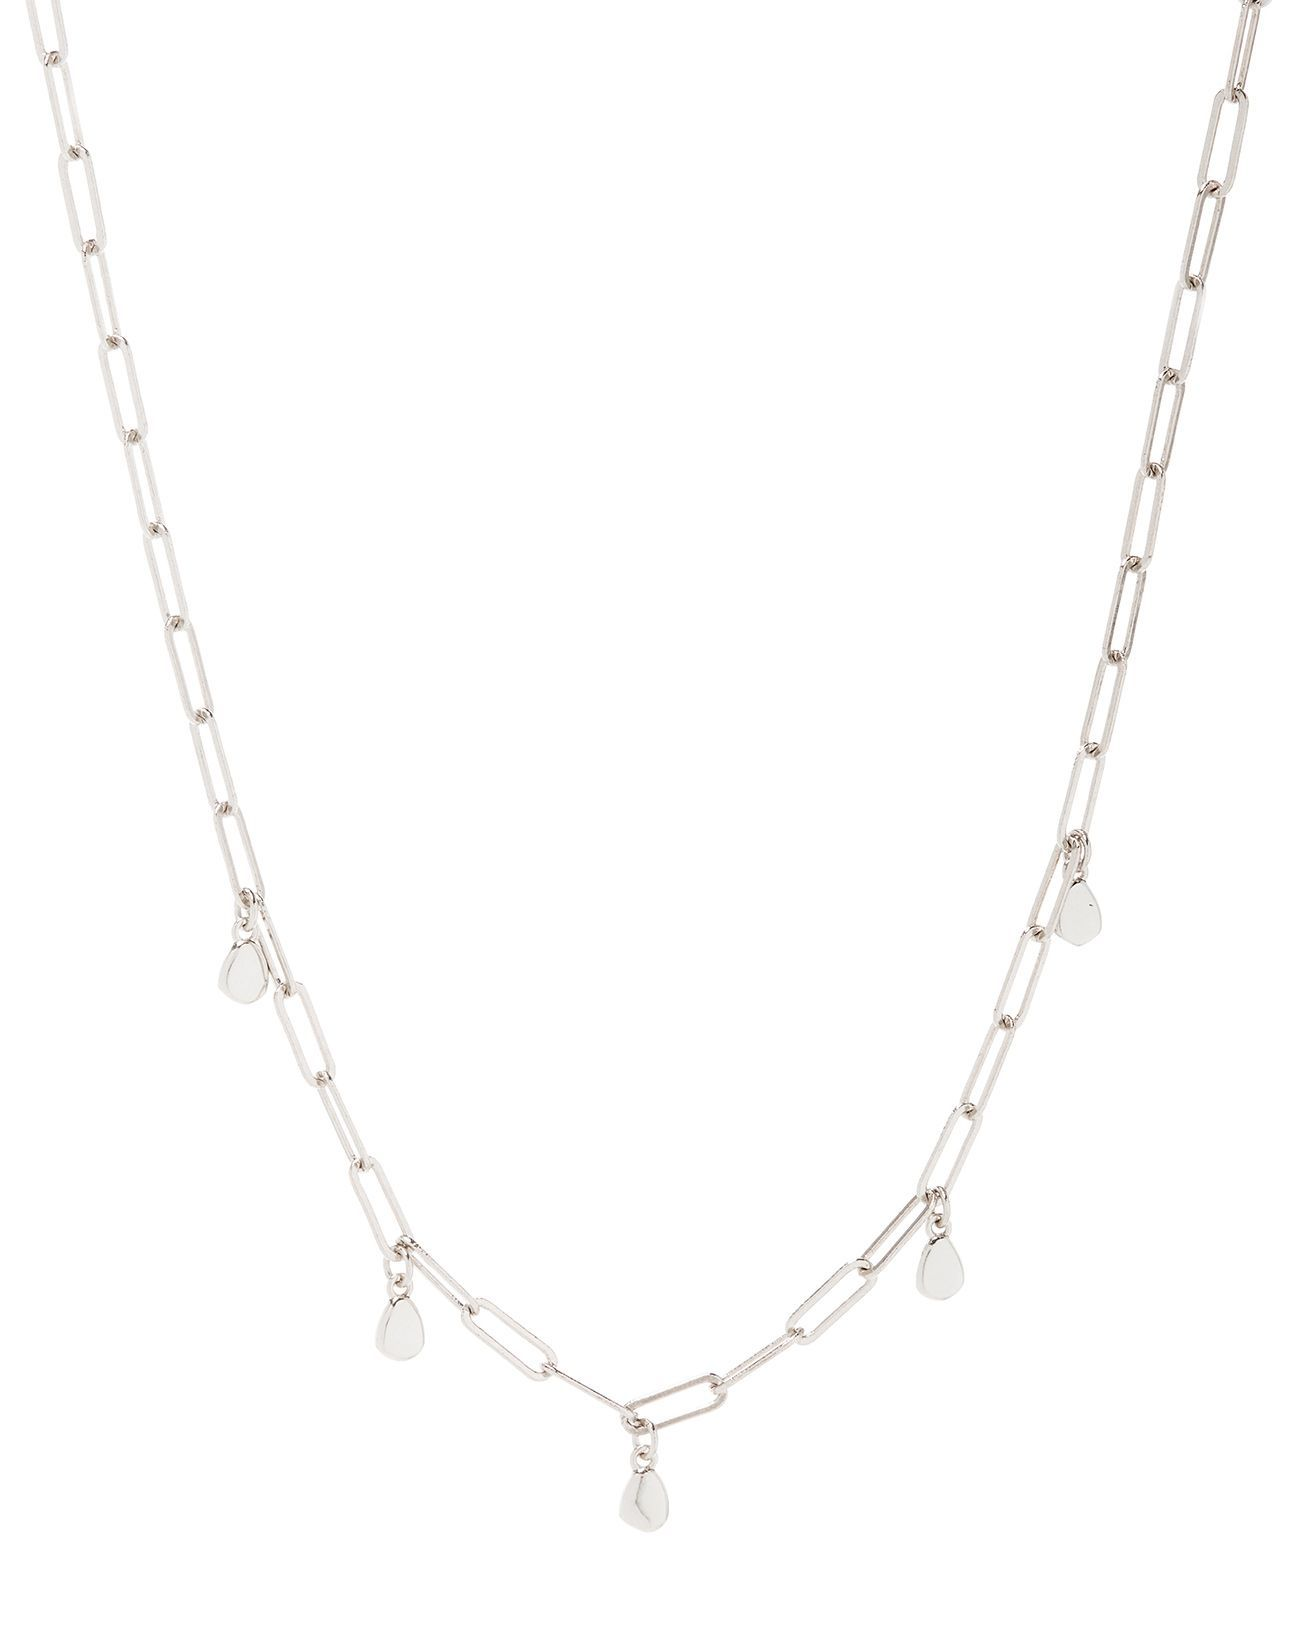 Load image into Gallery viewer, Golden Nugget Shaker Necklace - Silver | Luv AJ Women's Jewelry